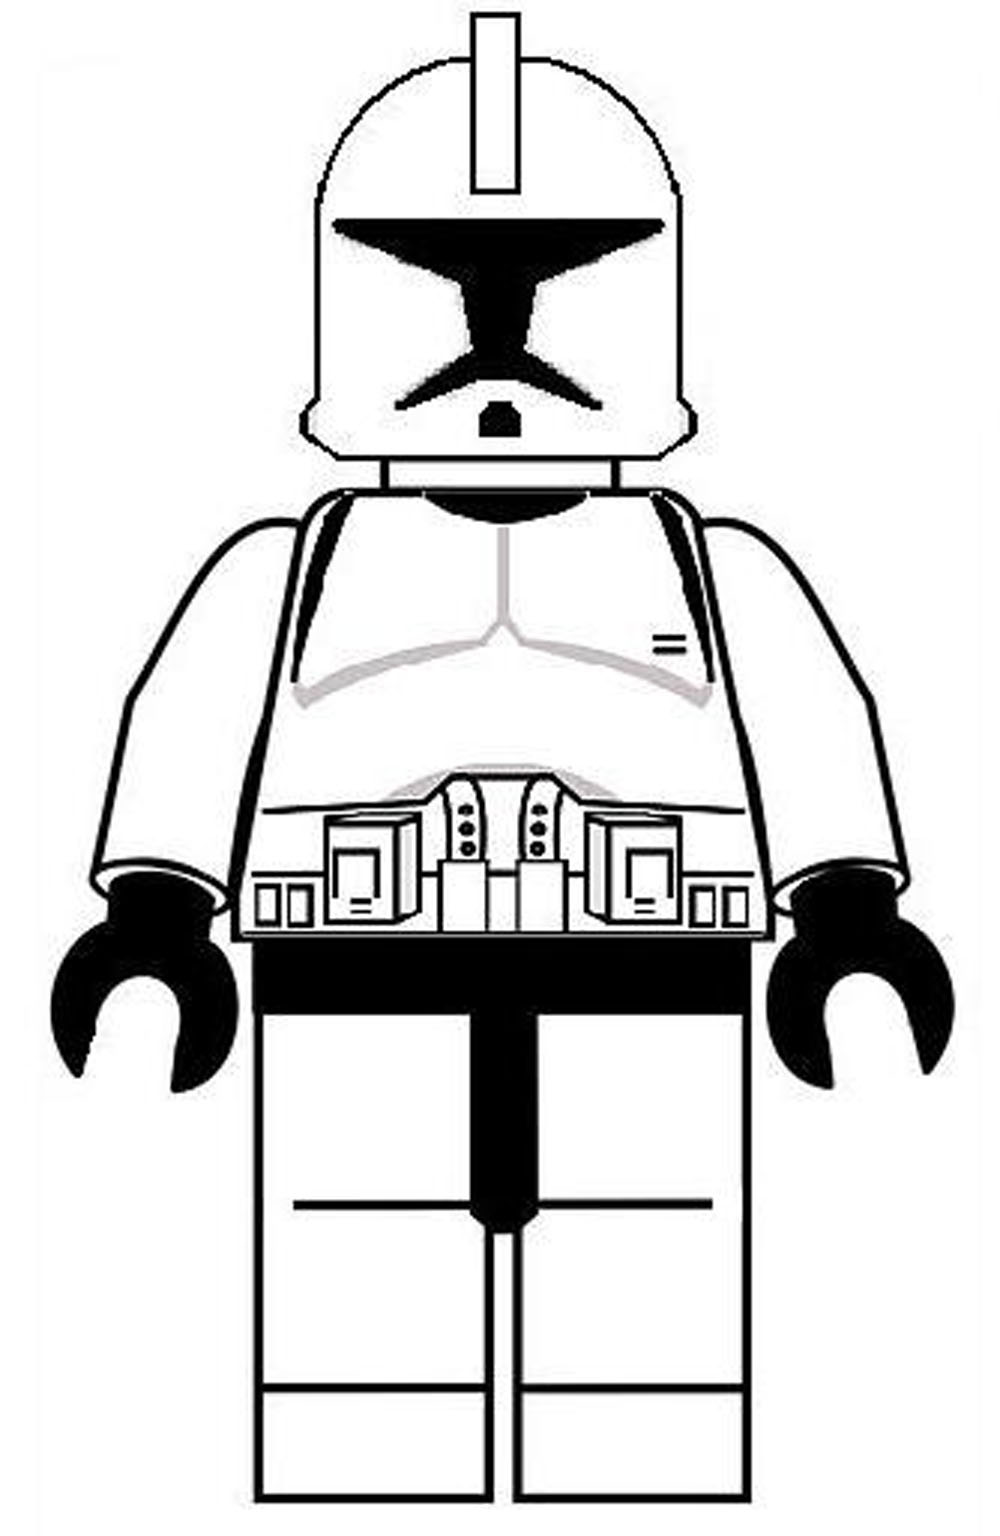 coloring lego printables the lego batman movie coloring pages to download and print lego printables coloring